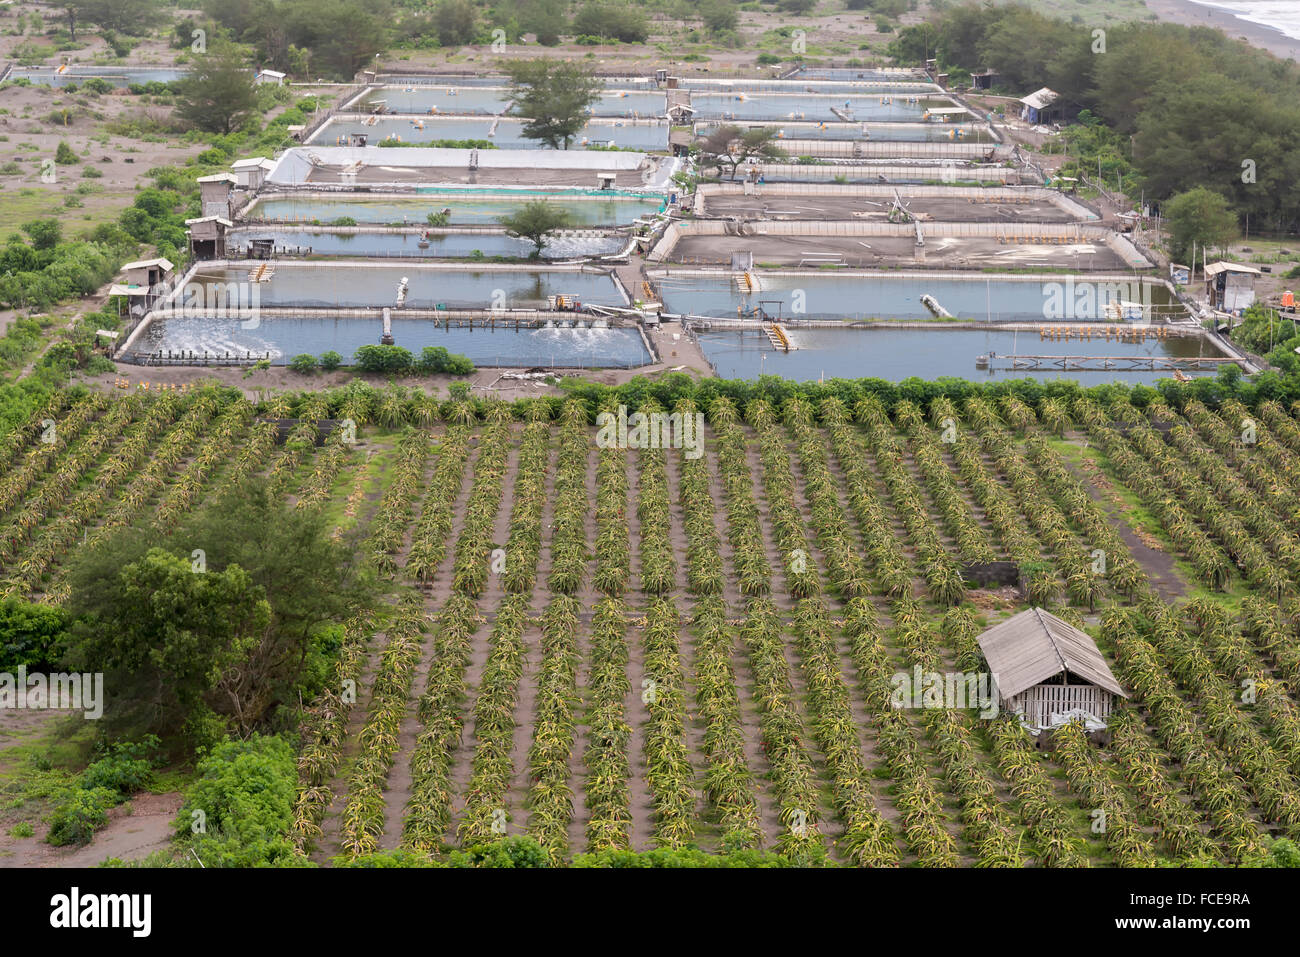 Plantation of red dragon fruit (Hylocereus costaricensis) and fish ponds in Indonesia - Stock Image